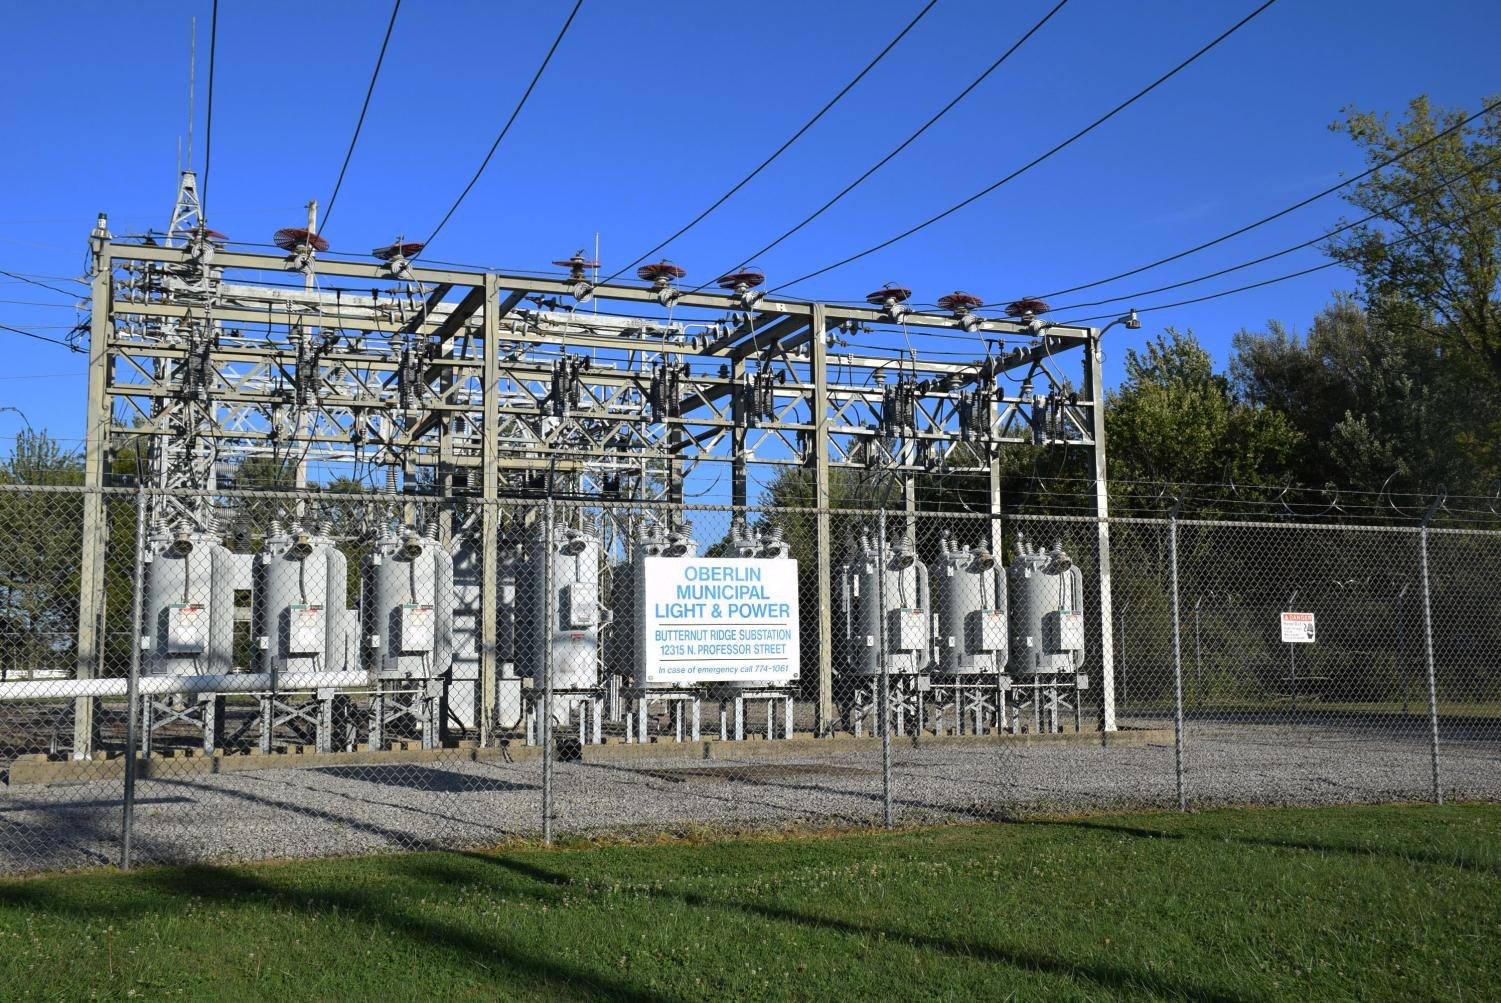 The Oberlin Municipal Light and Power plant generates and distributes electricity to Oberlin's residents. The plant is part of the redistribution process that happens when the city sells Renewable Energy Credits back into the electric grid and funds the Sustainable Reserve Program.